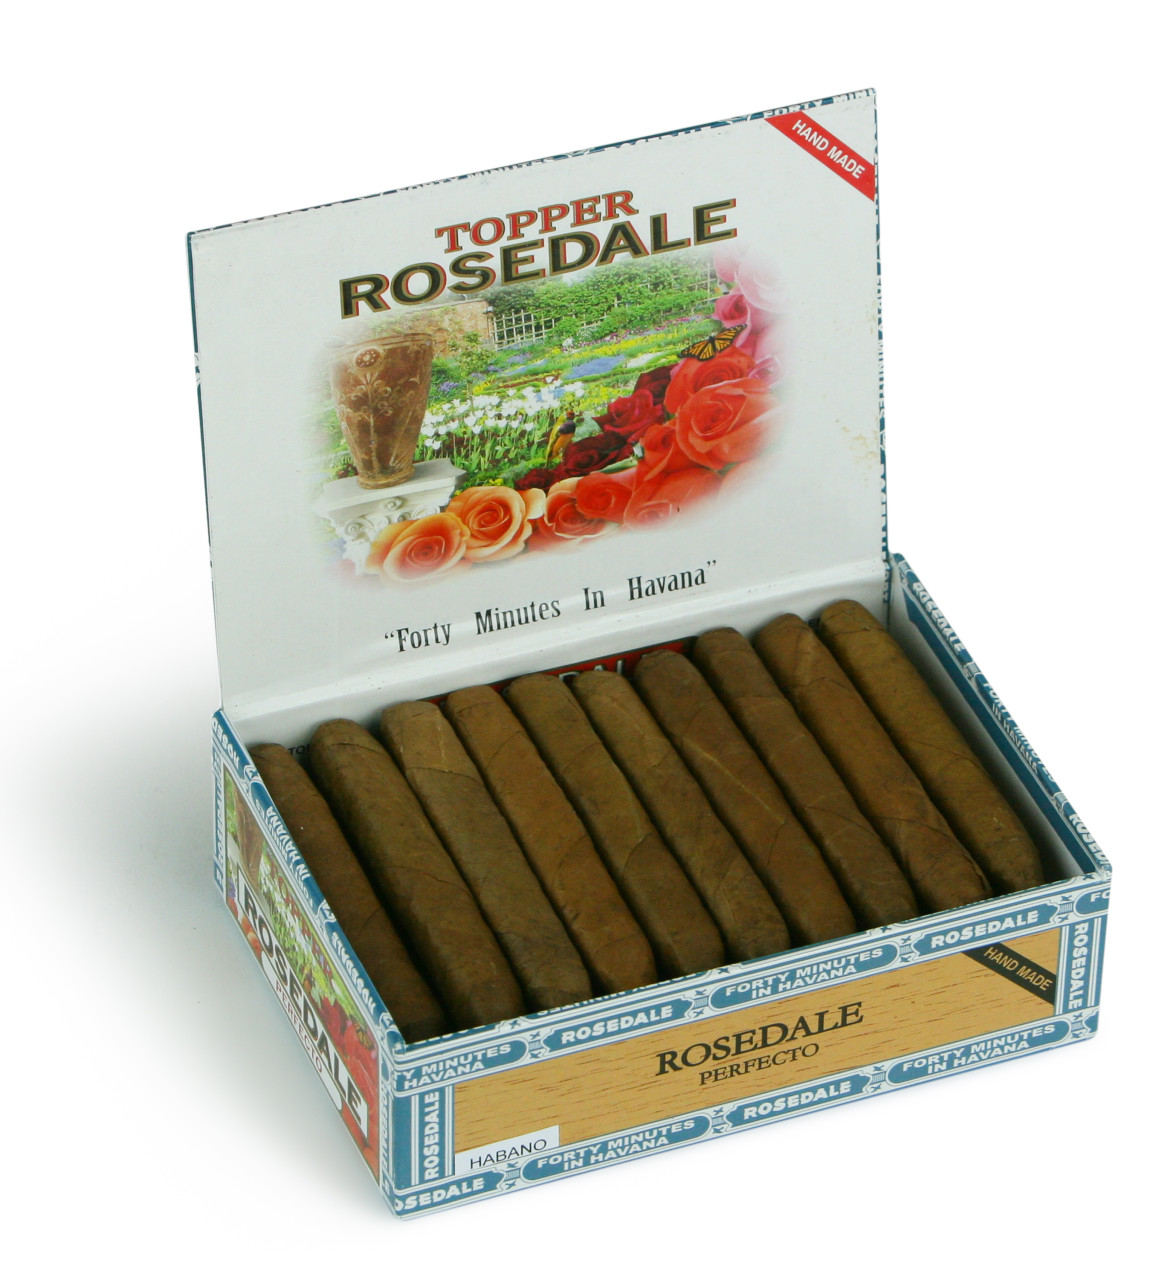 Topper Rosedale Londres Maduro box of 30